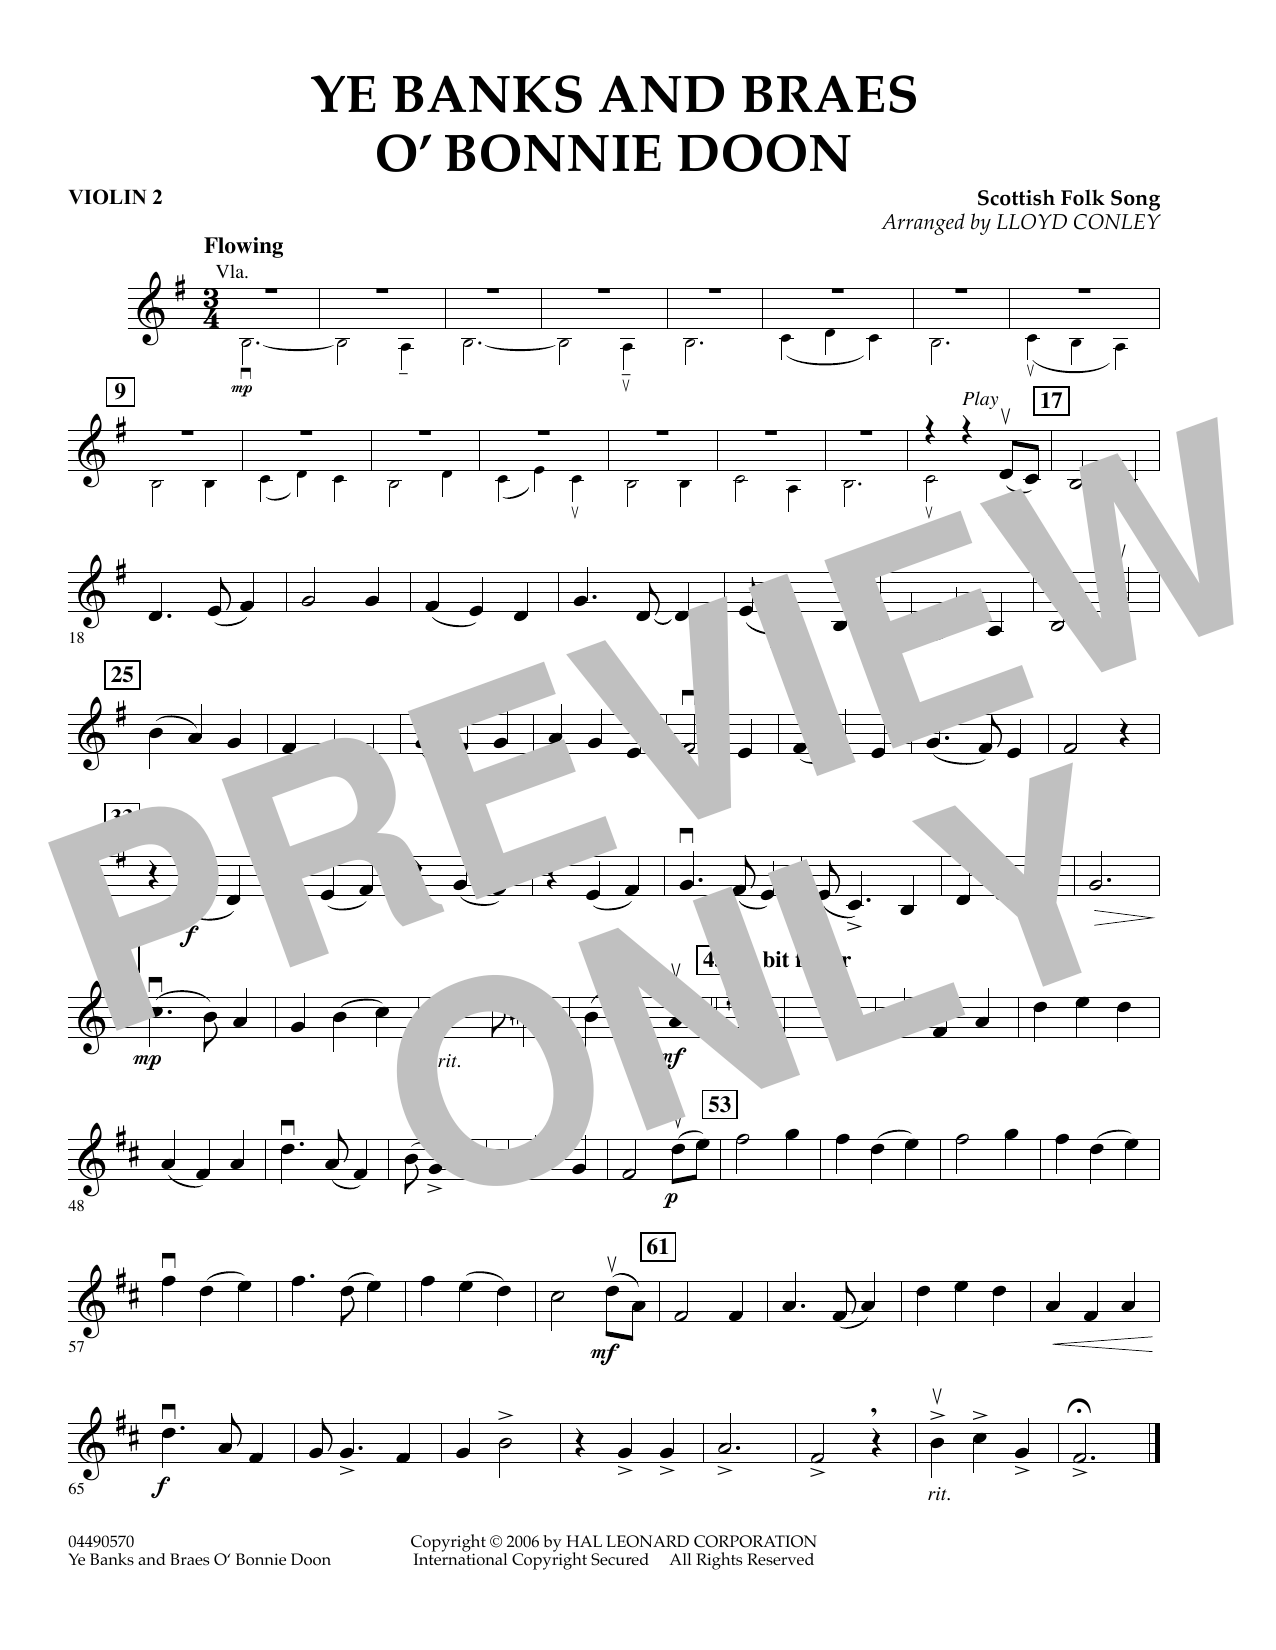 Lloyd Conley Ye Banks and Braes O' Bonnie Doon - Violin 2 sheet music preview music notes and score for Orchestra including 1 page(s)